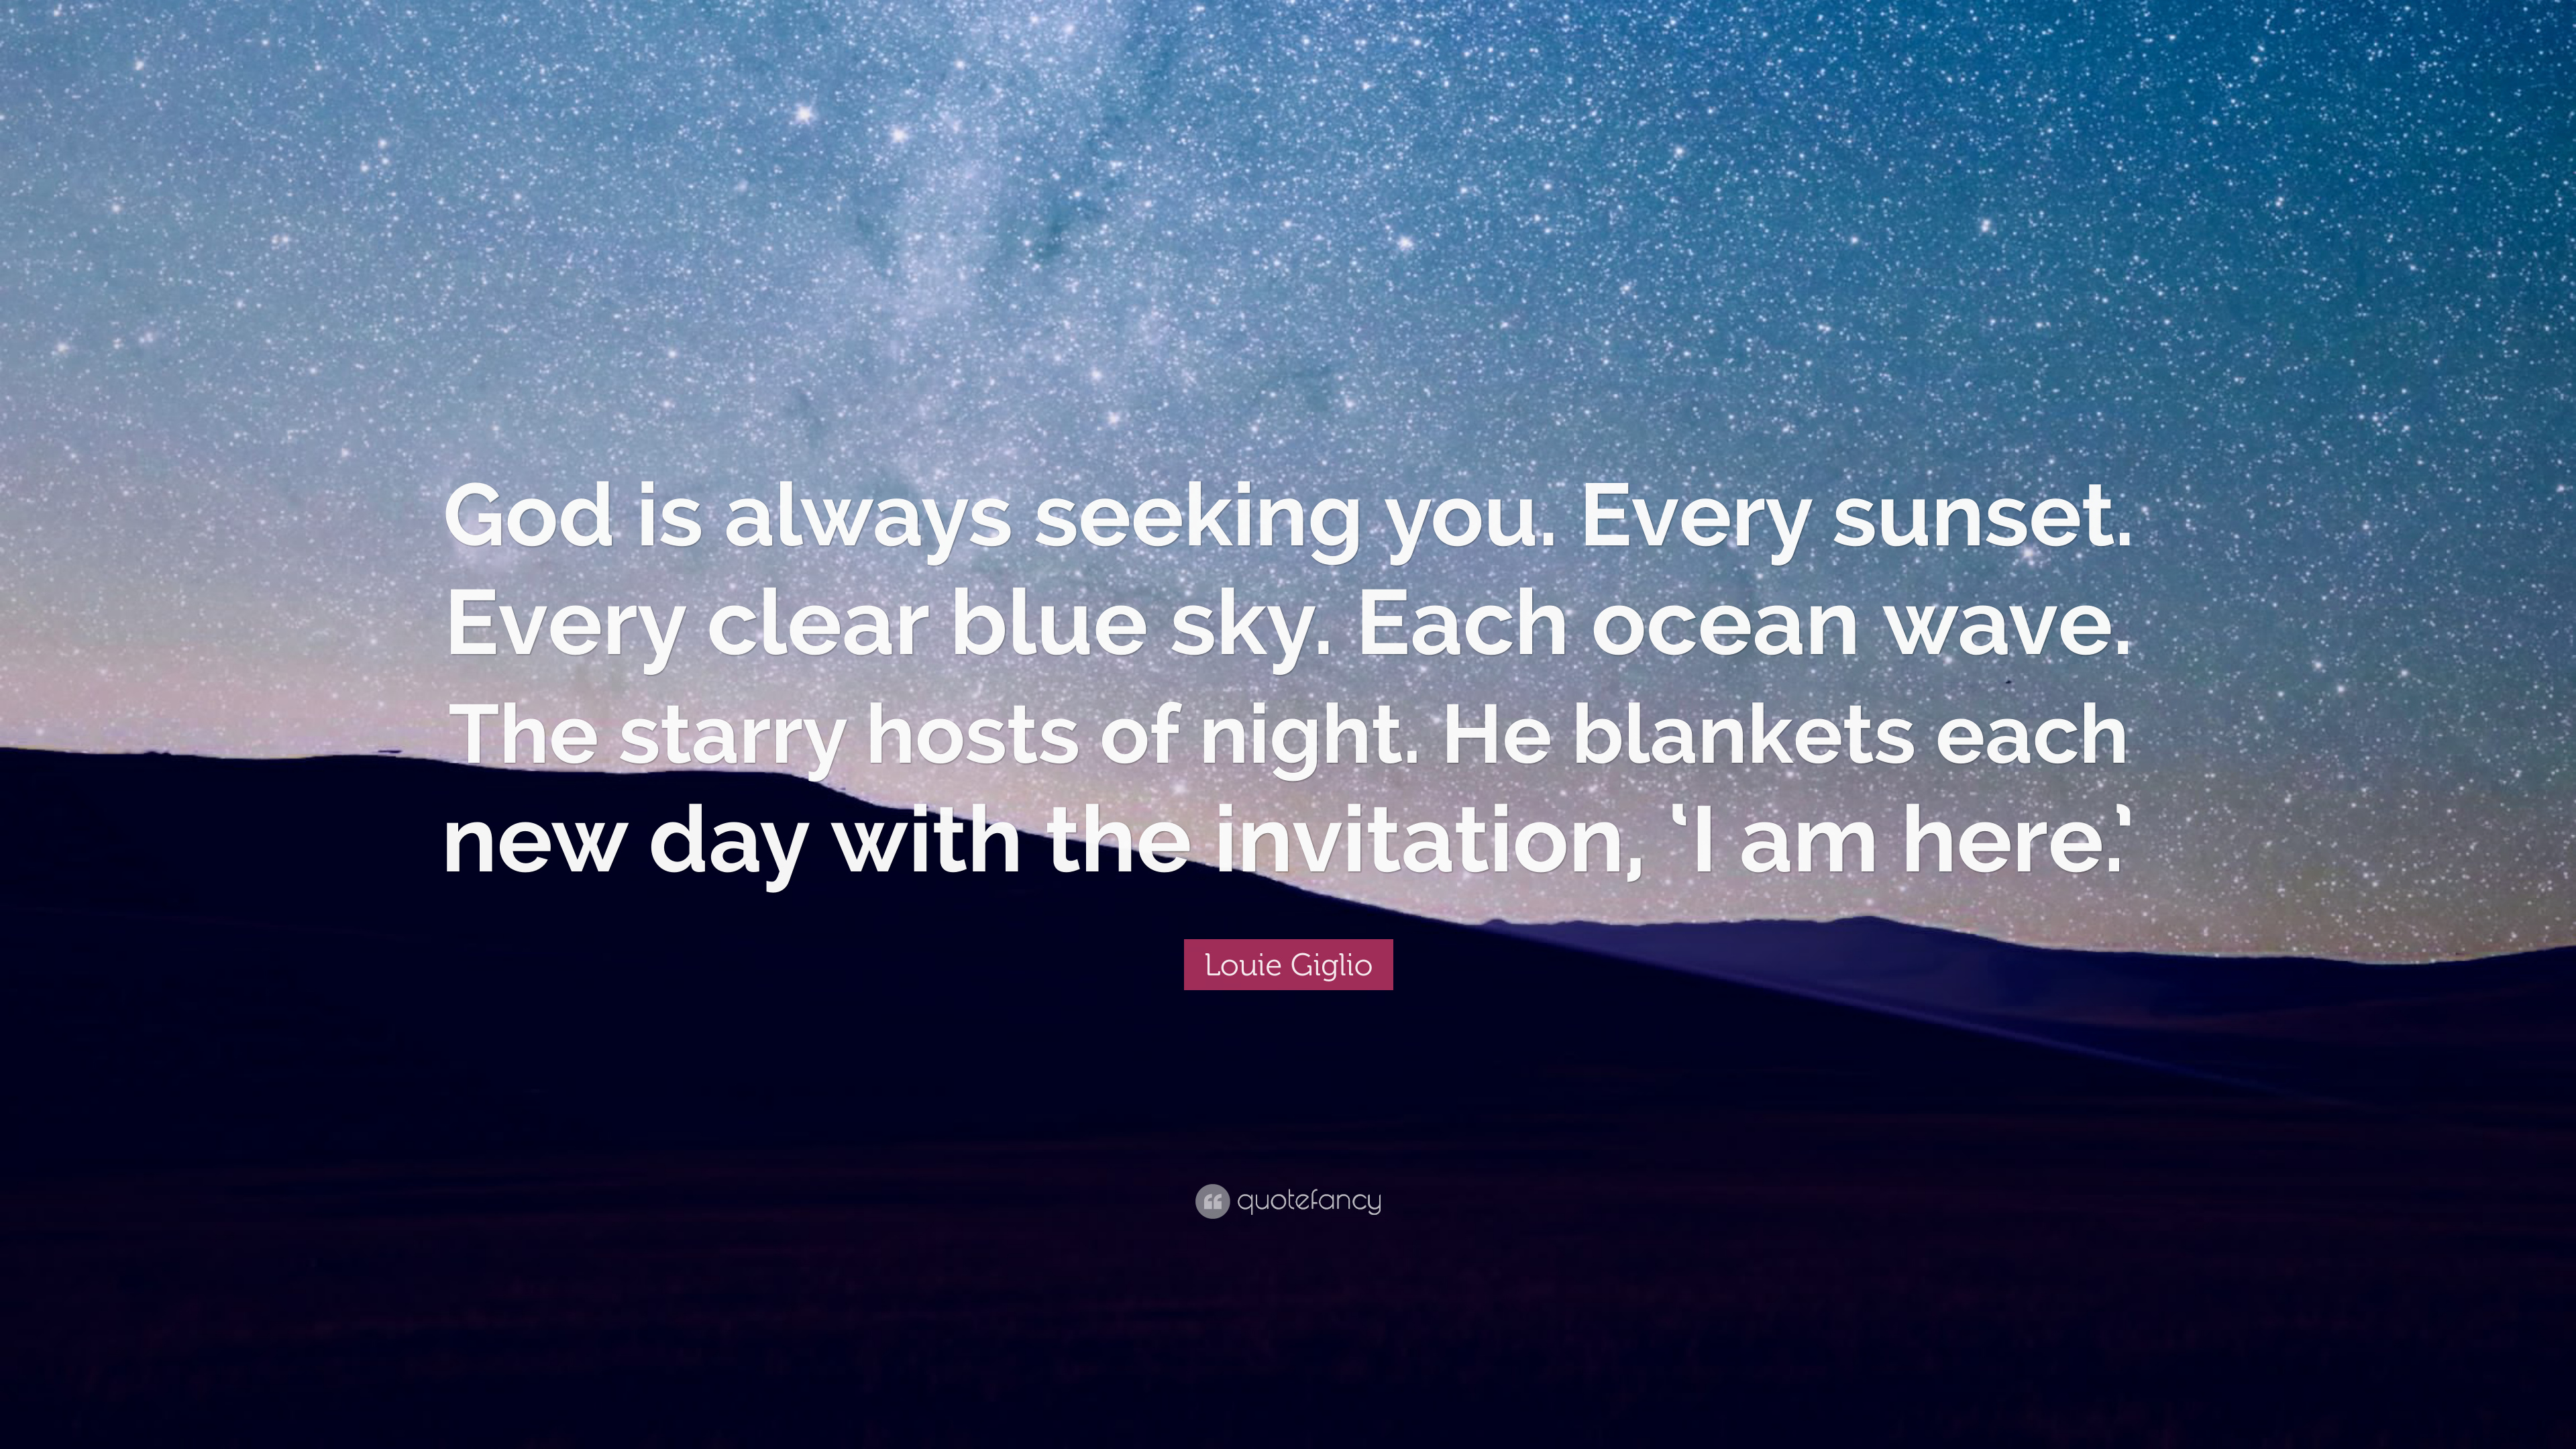 "louie giglio quote ""god is always seeking you every sunset"